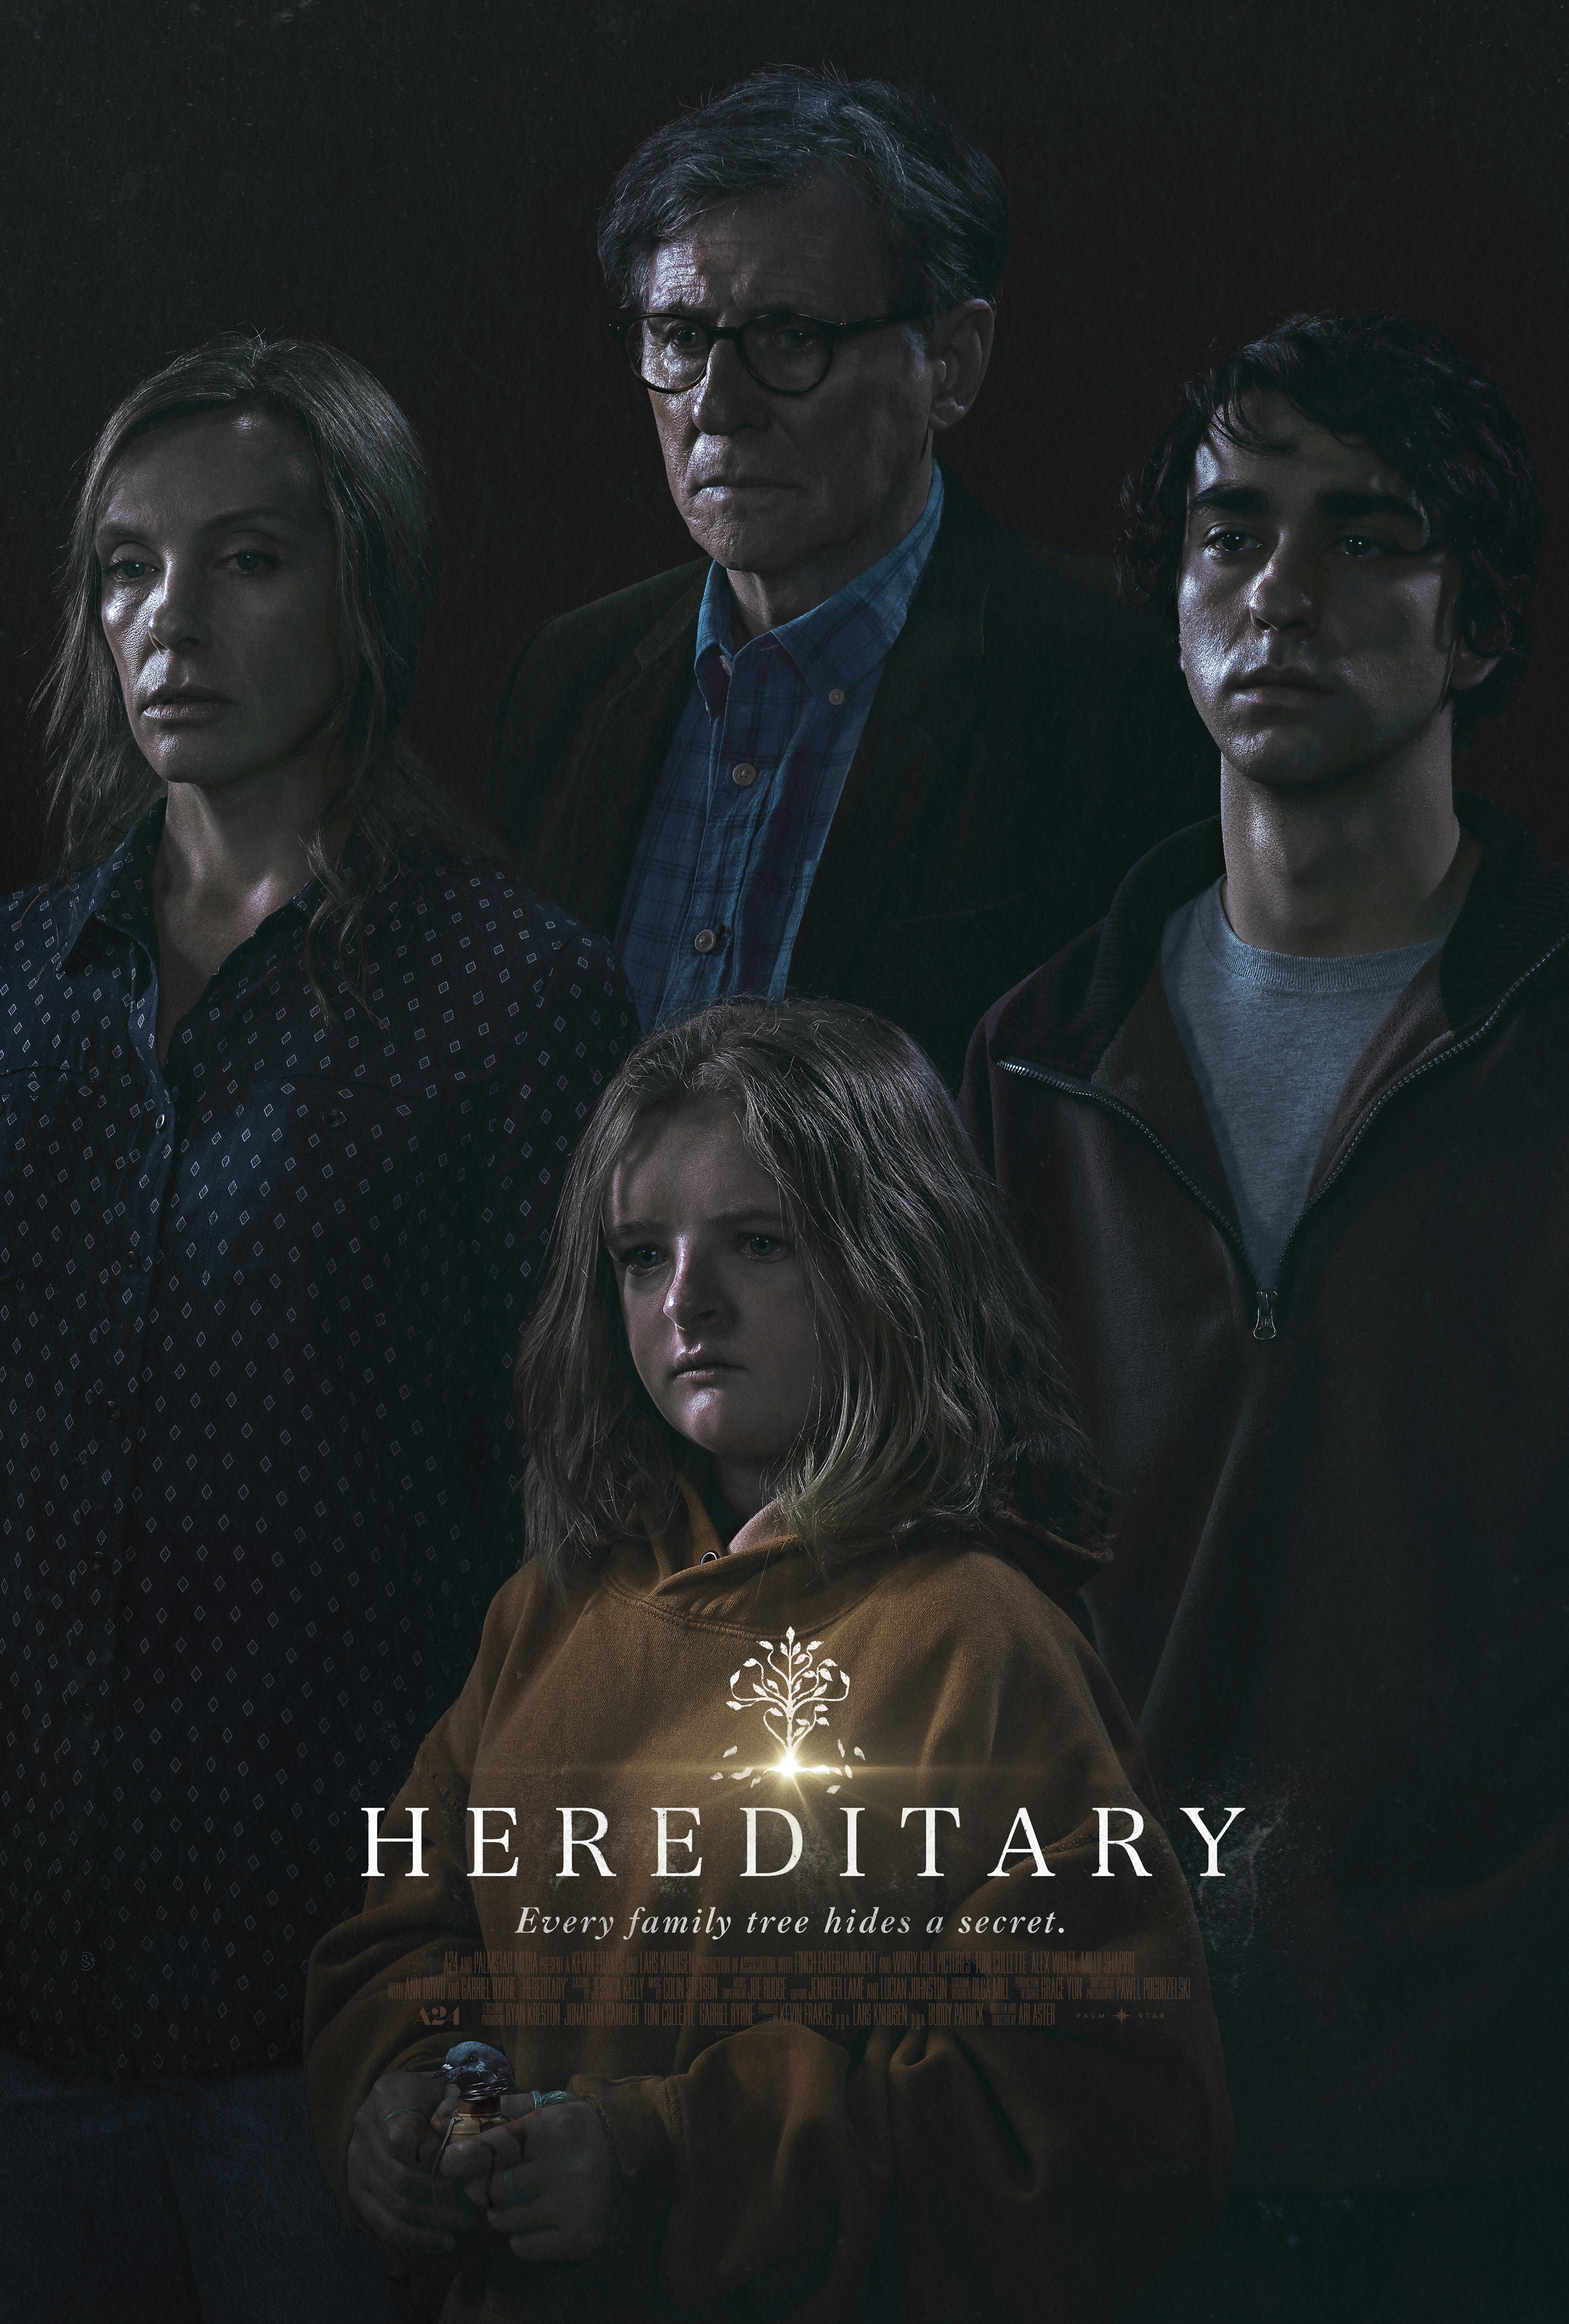 Hereditary (2018) - Directed by: Ari AsterStarring: Toni Collette, Milly Shapiro, Gabriel Byrne, Alex WolffRated: R for Horror Violence, Disturbing Images, Language, Drug Use and Brief Graphic NudityRunning Time: 2 h 7 mTMM Score: 5 stars out of 5STRENGTHS: Directing, Pacing, Story, Atmosphere, ActingWEAKNESSES: Some On The Nose Dialogue